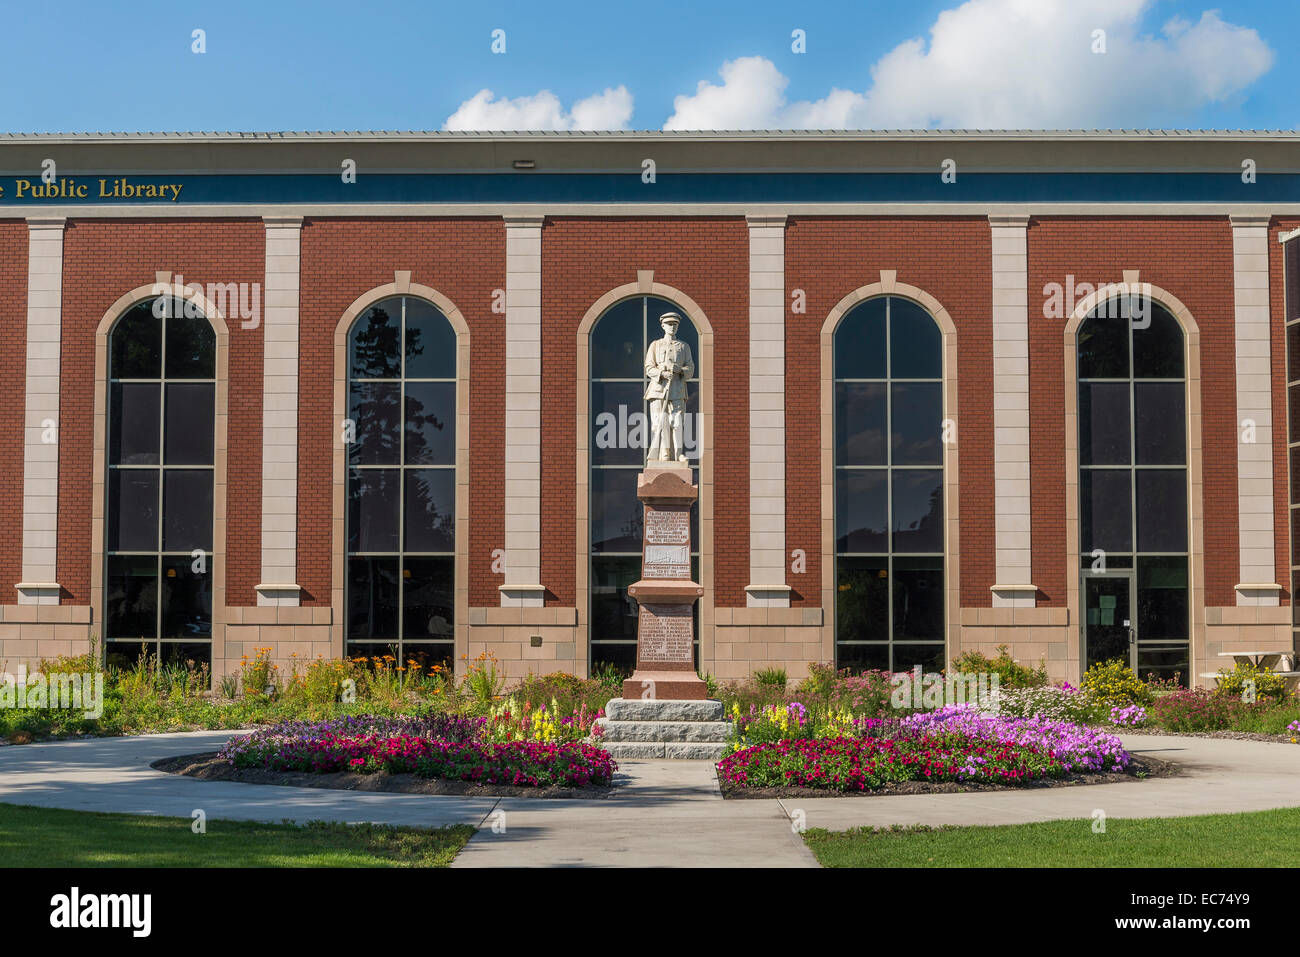 Lacombe Memorial Cenotaph in front of the Public Library, Lacombe, Alberta, Canada - Stock Image